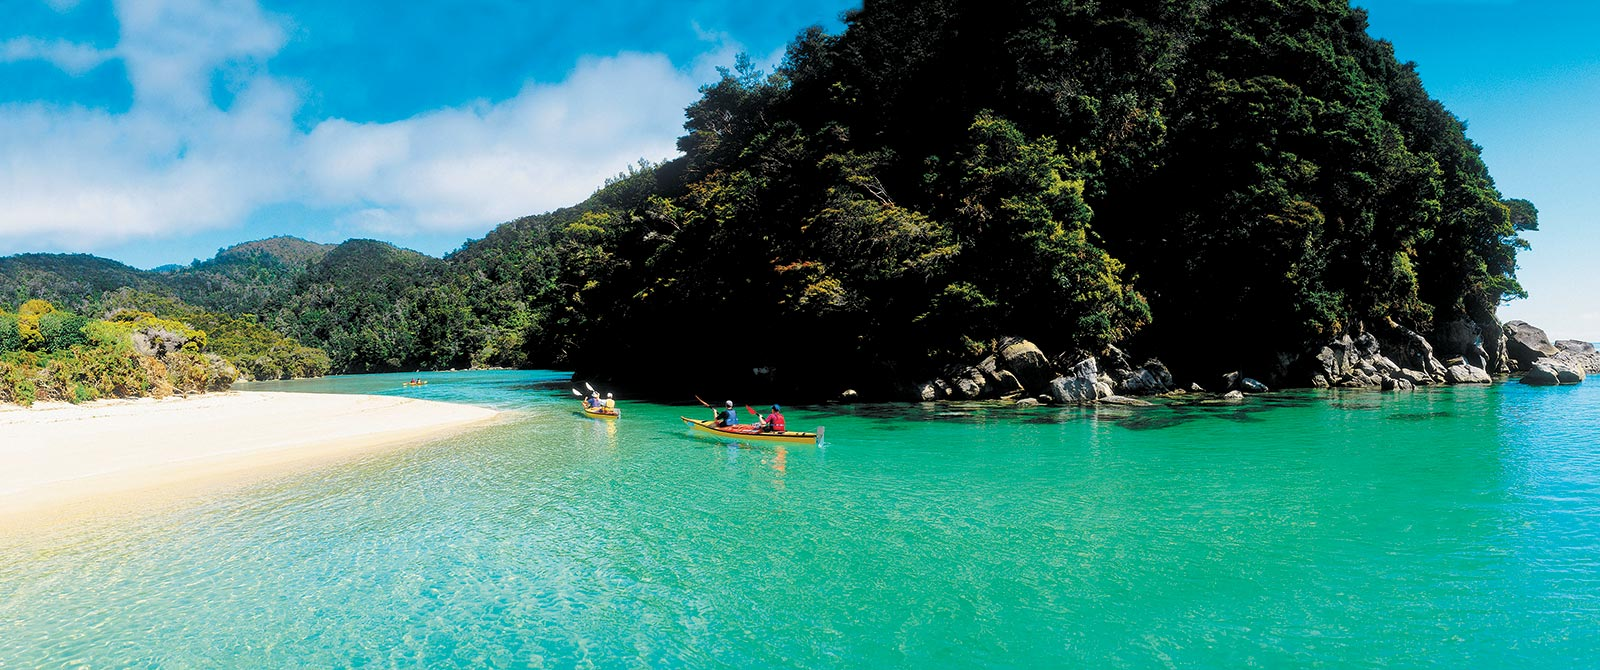 Sea Kayaking in Abel Tasman National Park - Book Your Trip to New Zealand - New Zealand Travel Agency